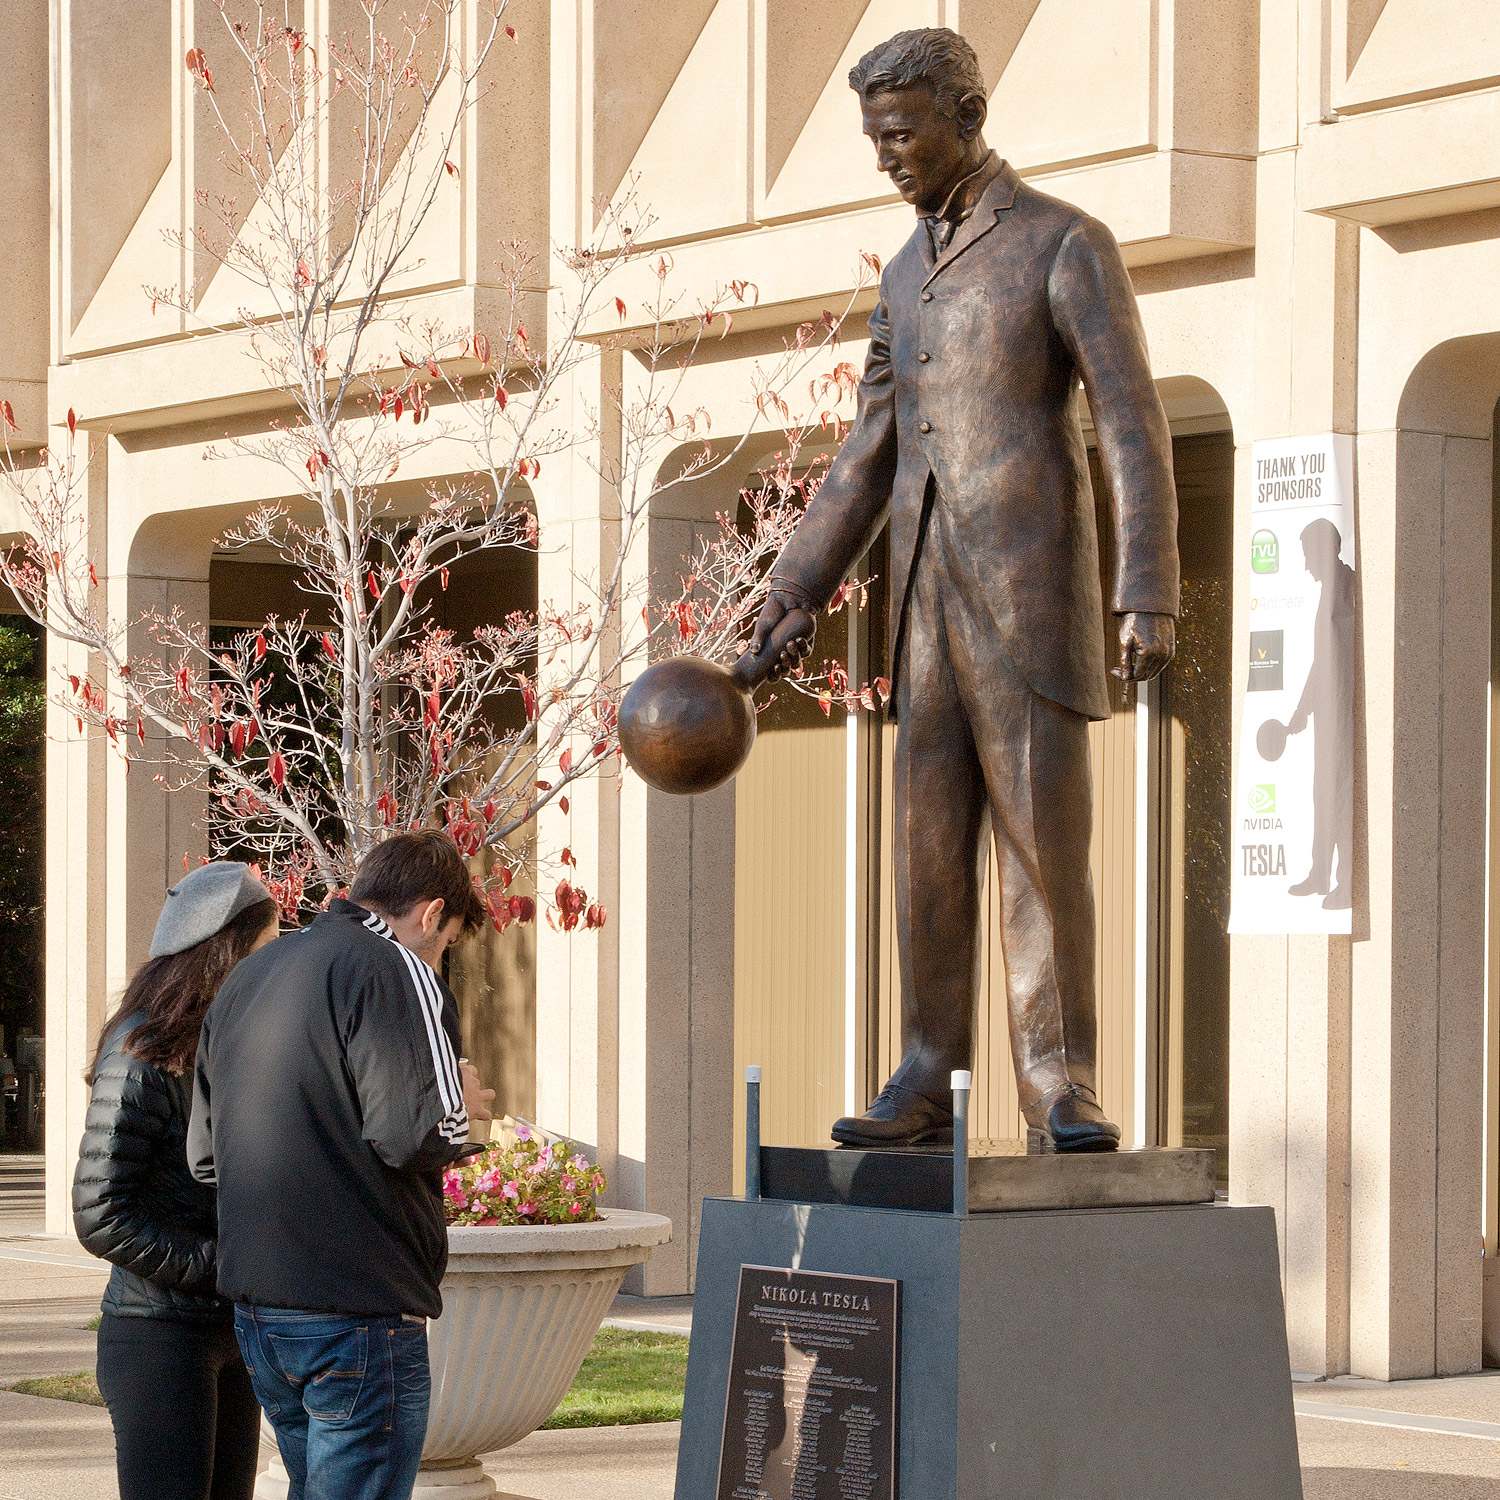 A    Statue of Nikola Tesla in the Silicon Valley , Collection of Northern Imagination. Funded by KickStarter backers.